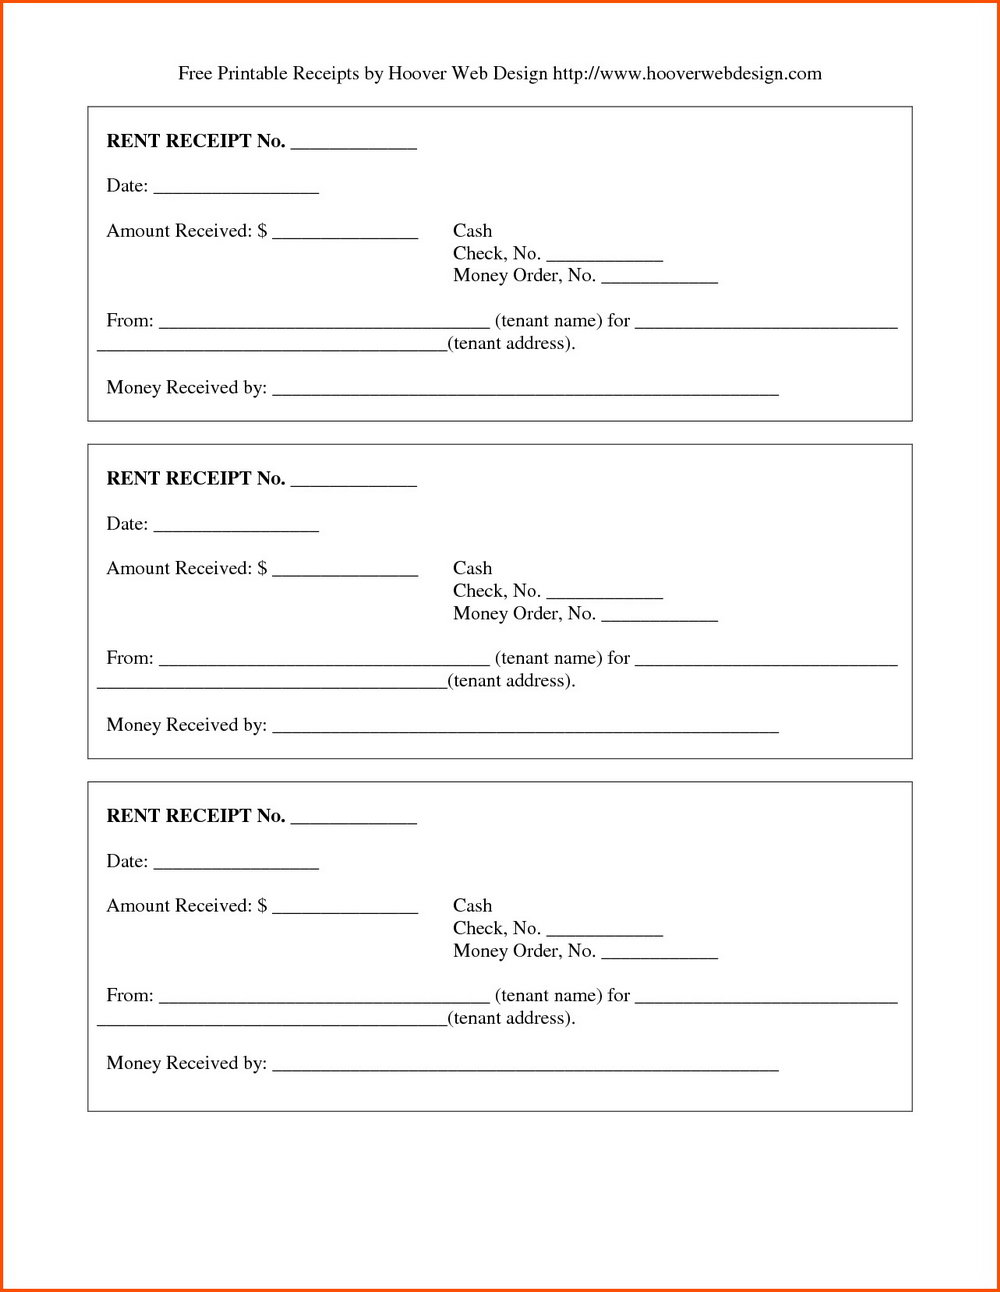 Free Rent Invoice Template Word